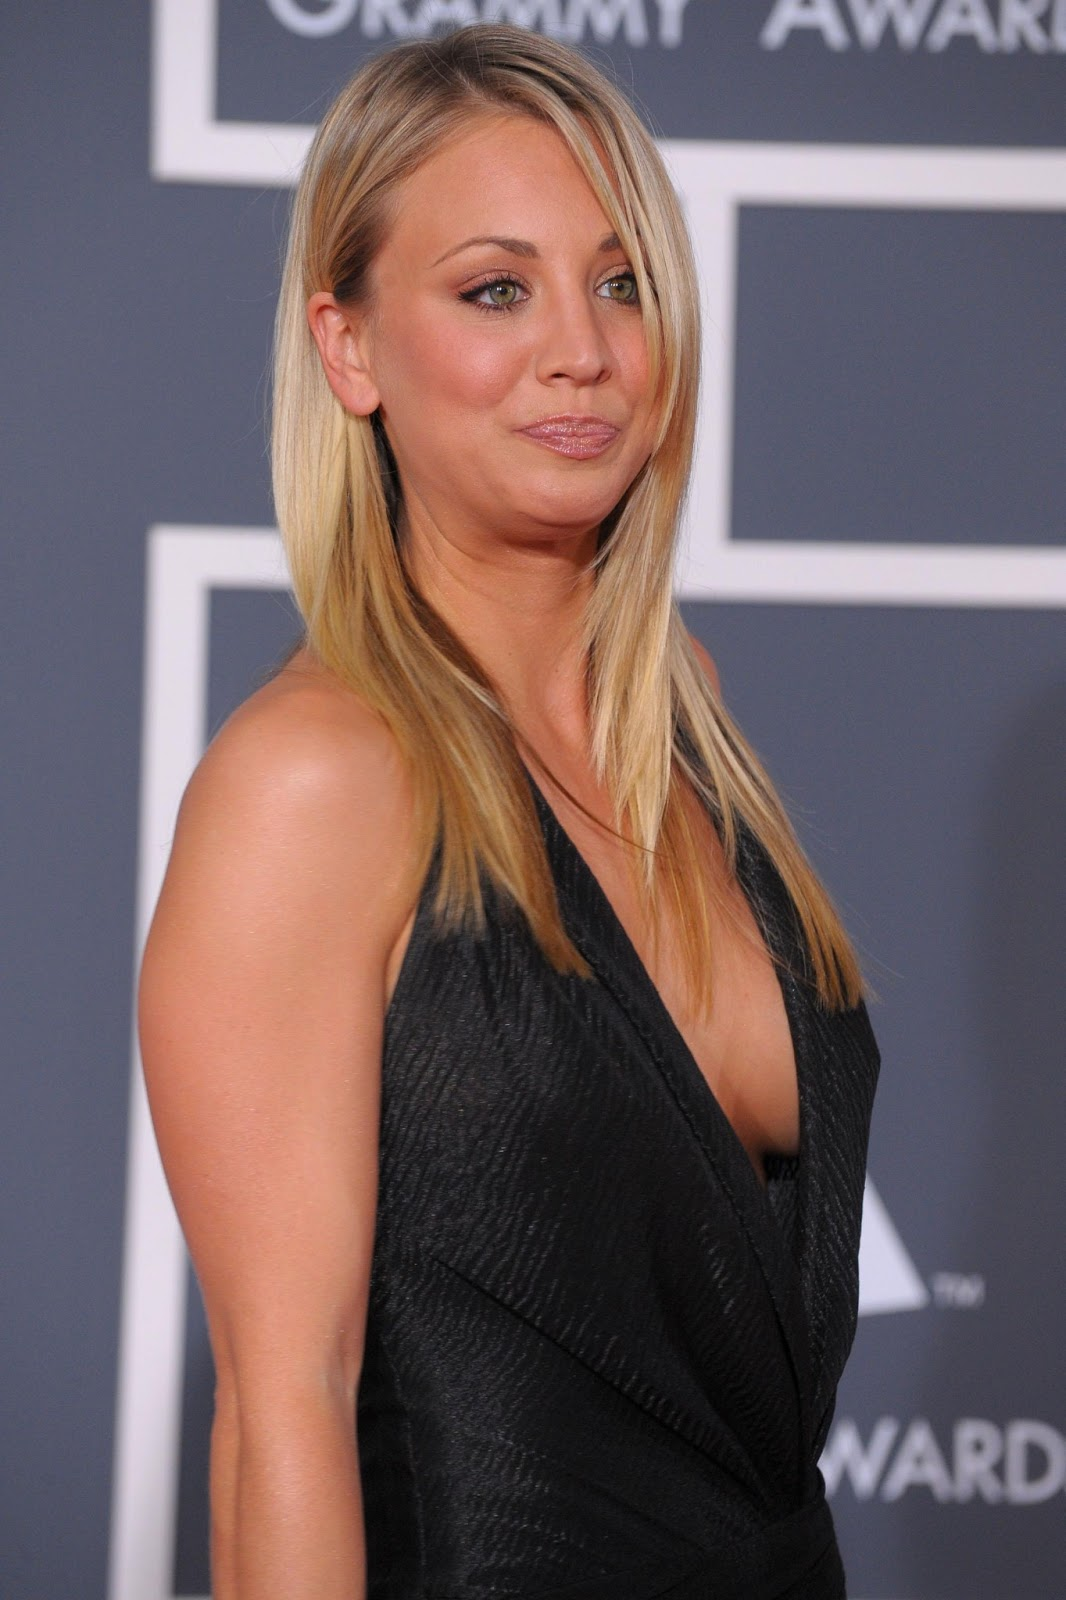 all about celebrity: kaley cuoco height, weight, body measurements